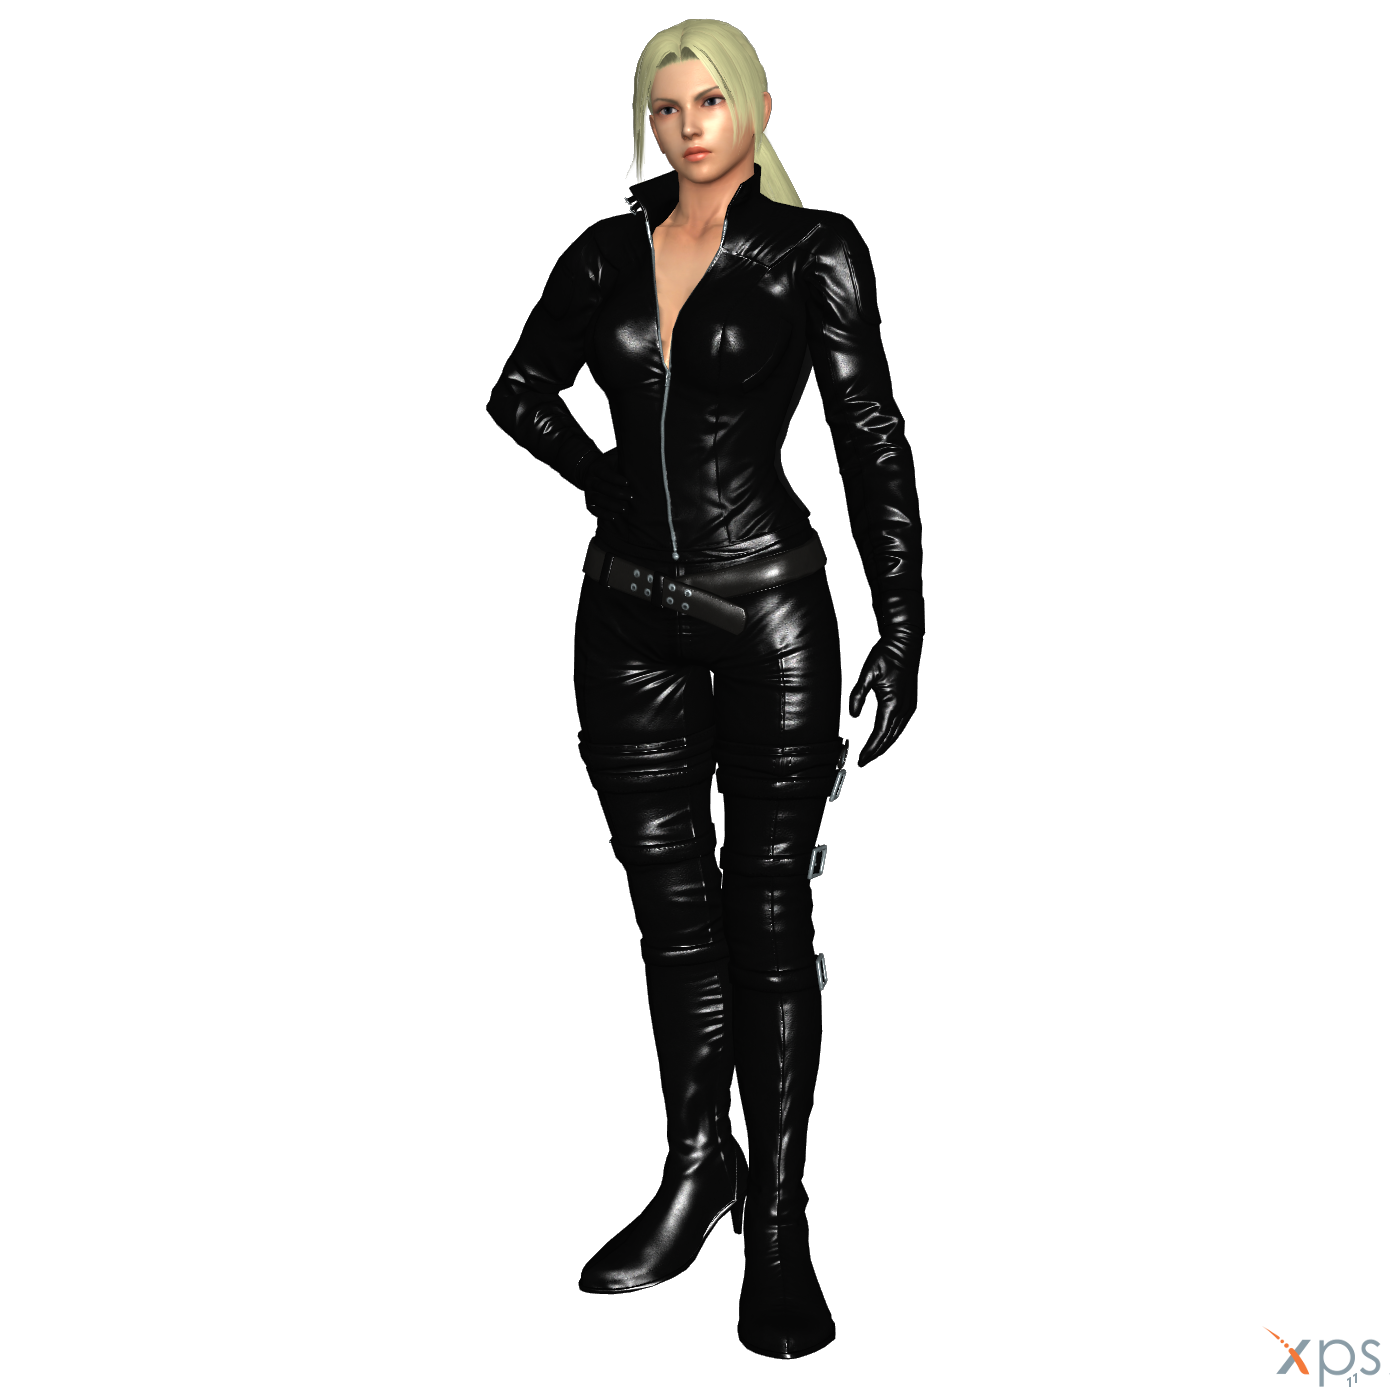 Tk7 Nina Williams Leather Outfit By Loriscangini On Deviantart